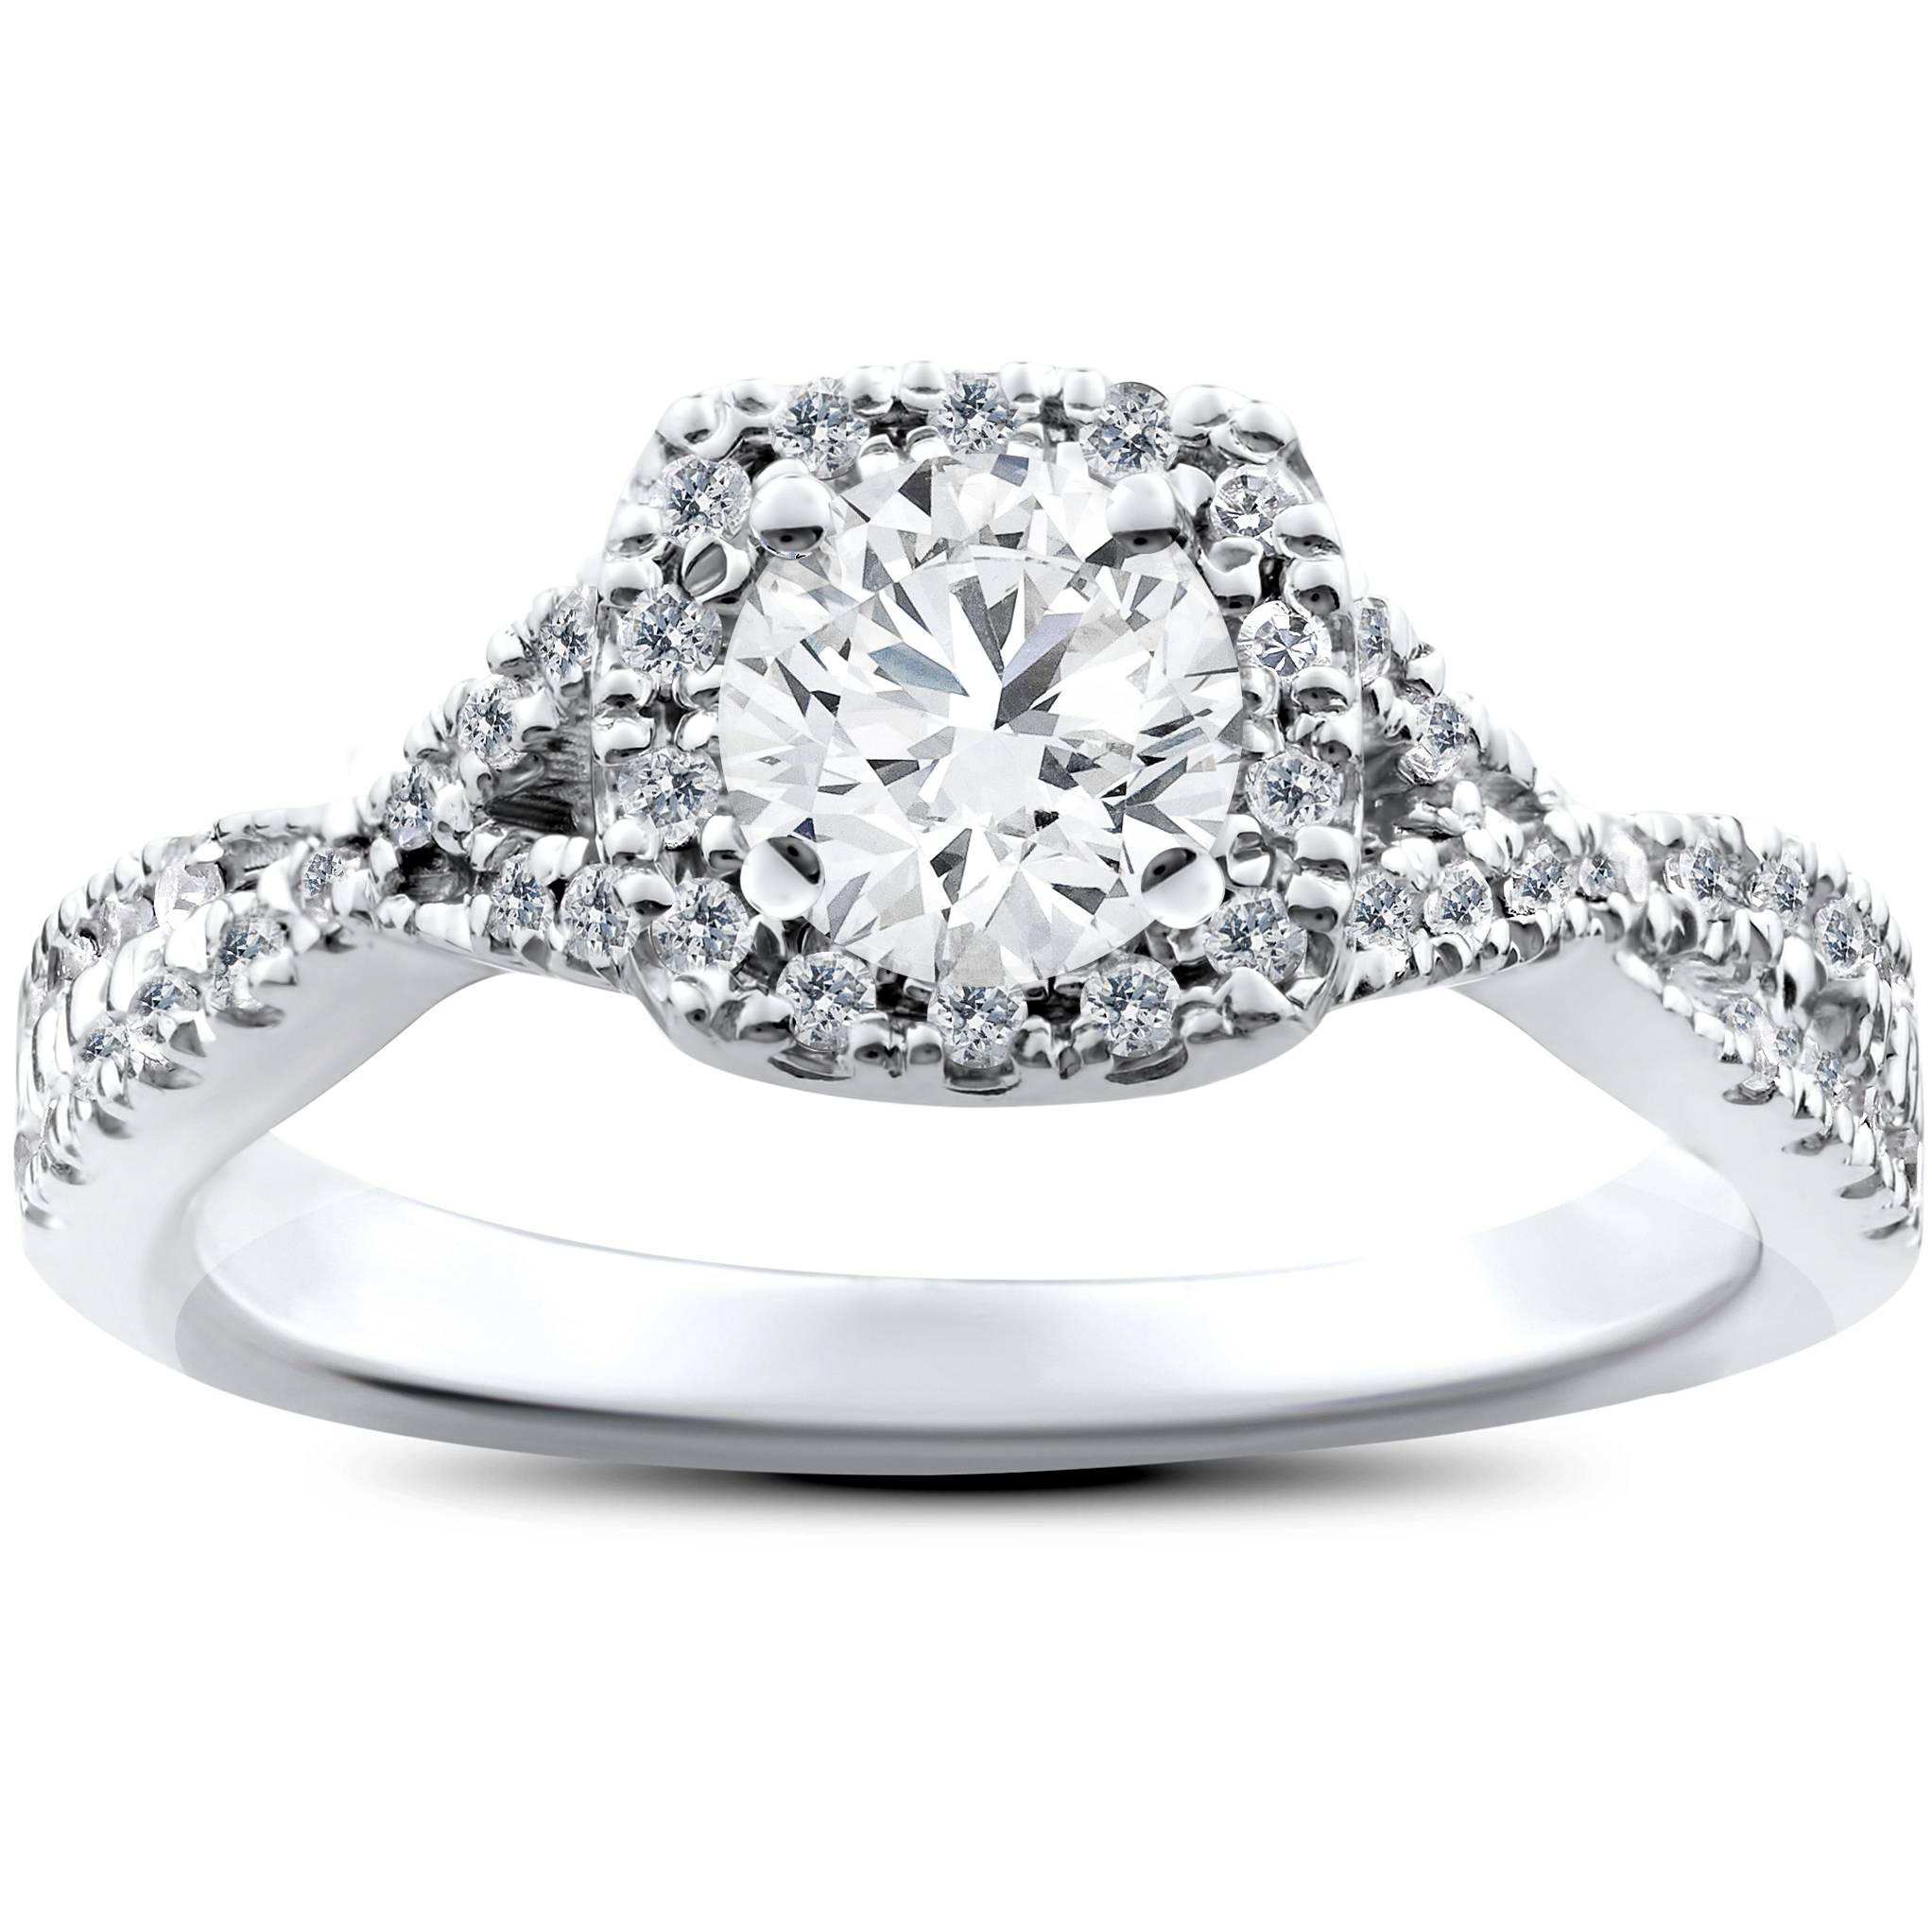 1ct Cushion Halo Solitaire Round Diamond Engagement Ring 14K White Gold by Pompeii3